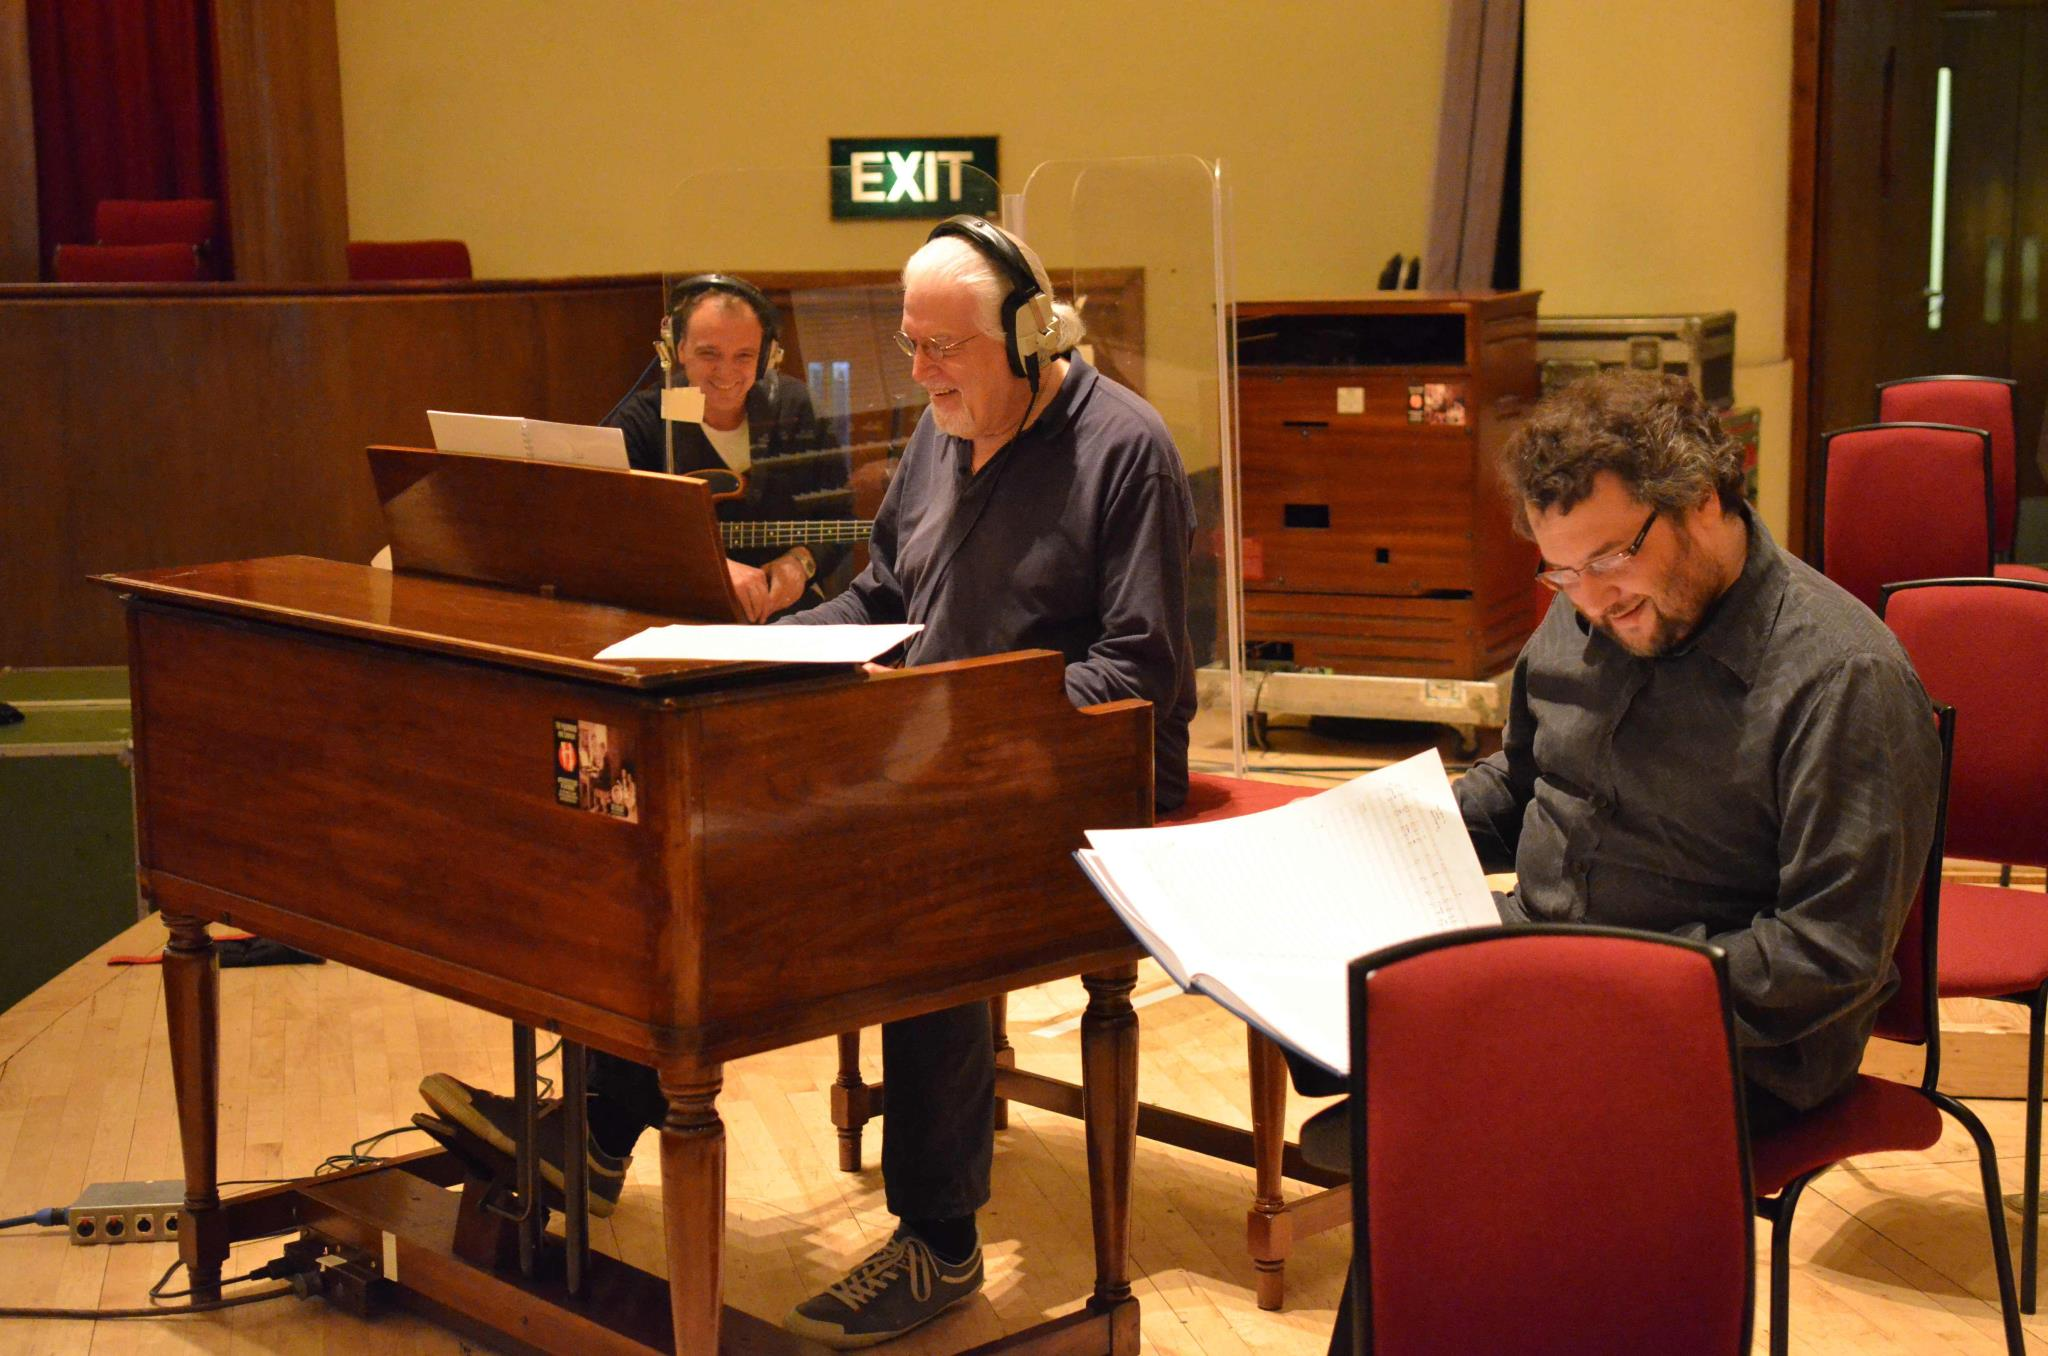 Guy Pratt (bass), Jon Lord, Paul Mann during the Liverpool recording sessions. Photo: Mick Gregory